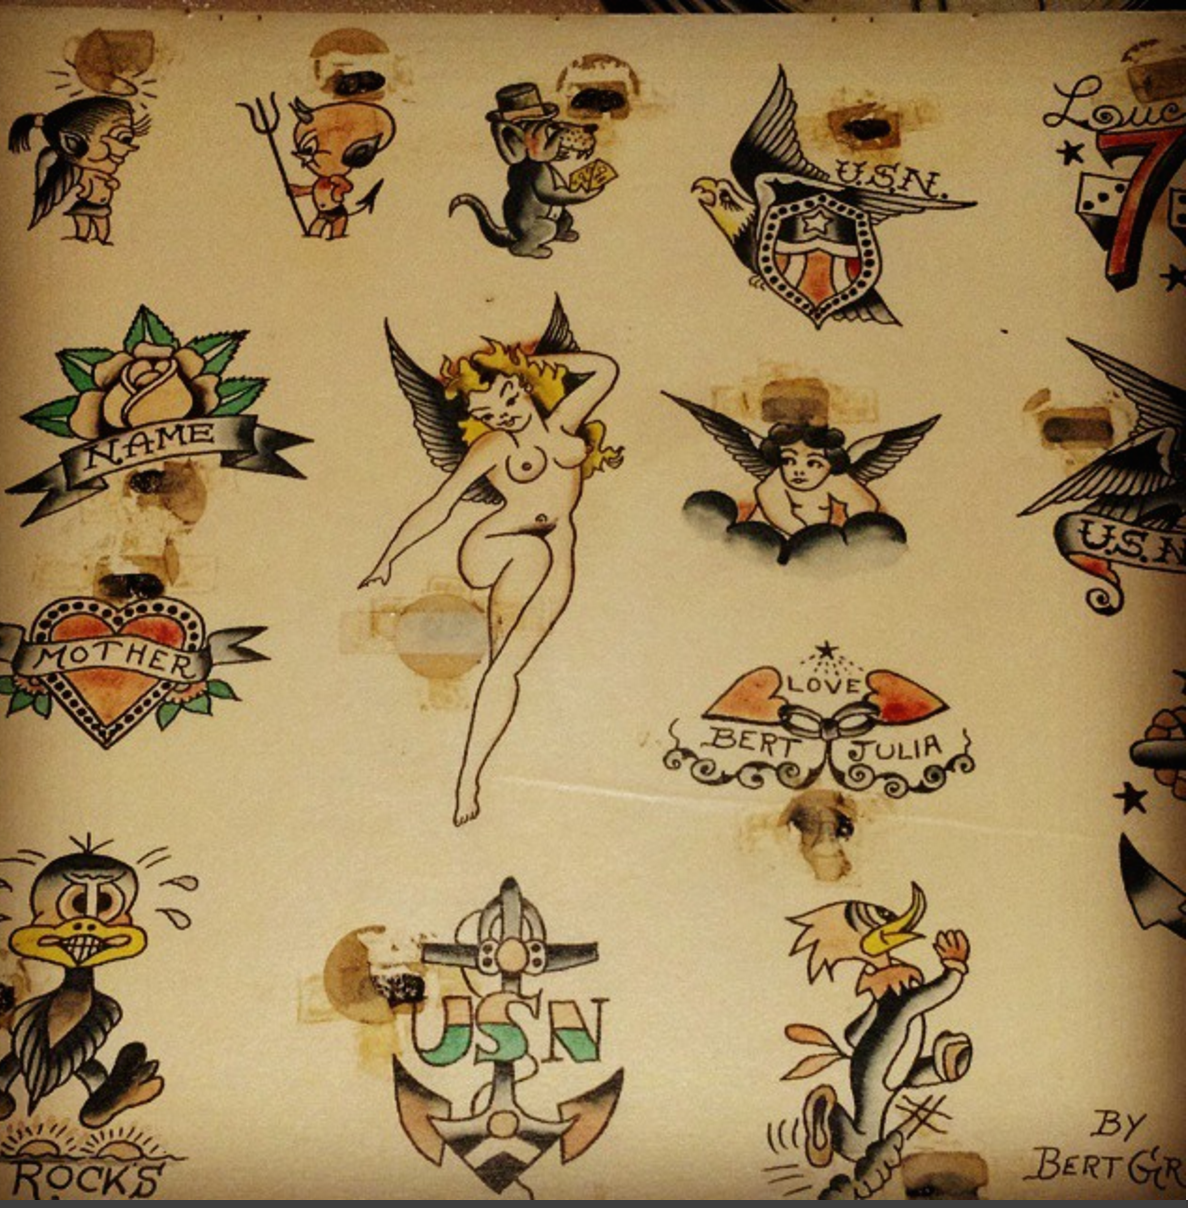 bert grimm vintage tattoo flash pinterest grimm tattoo flash and traditional flash. Black Bedroom Furniture Sets. Home Design Ideas